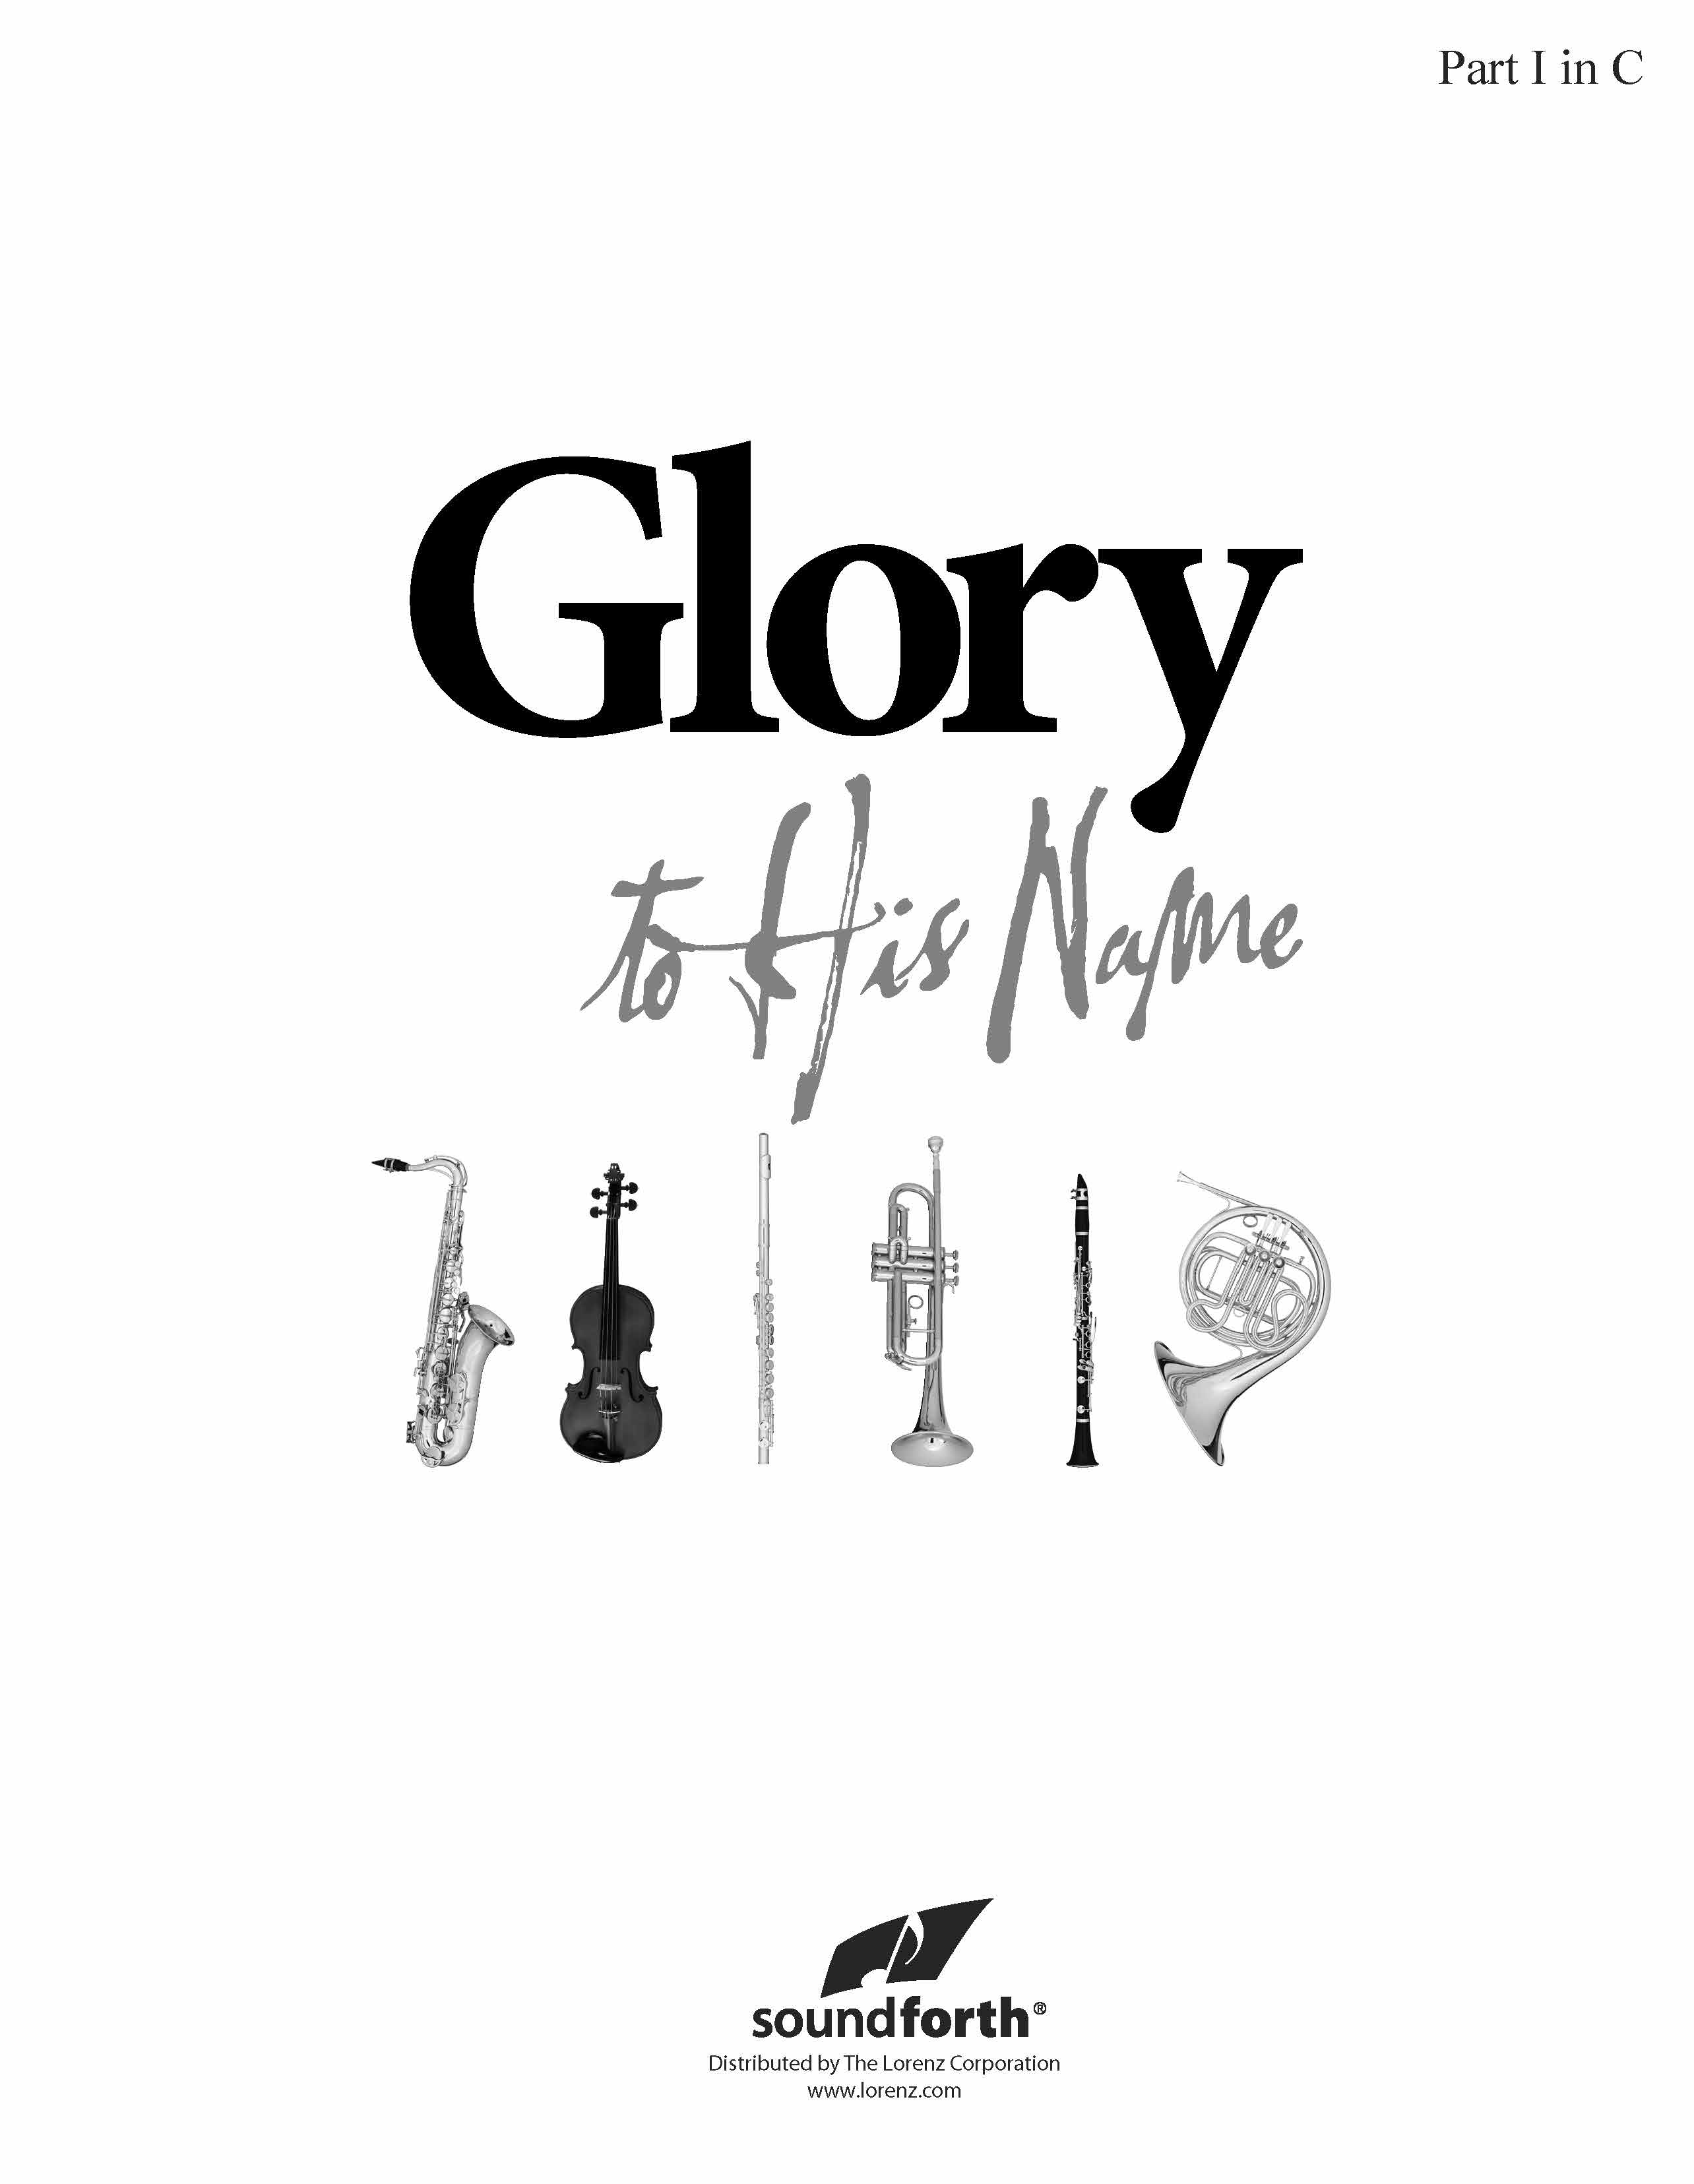 Glory to His Name - Part 1 in C